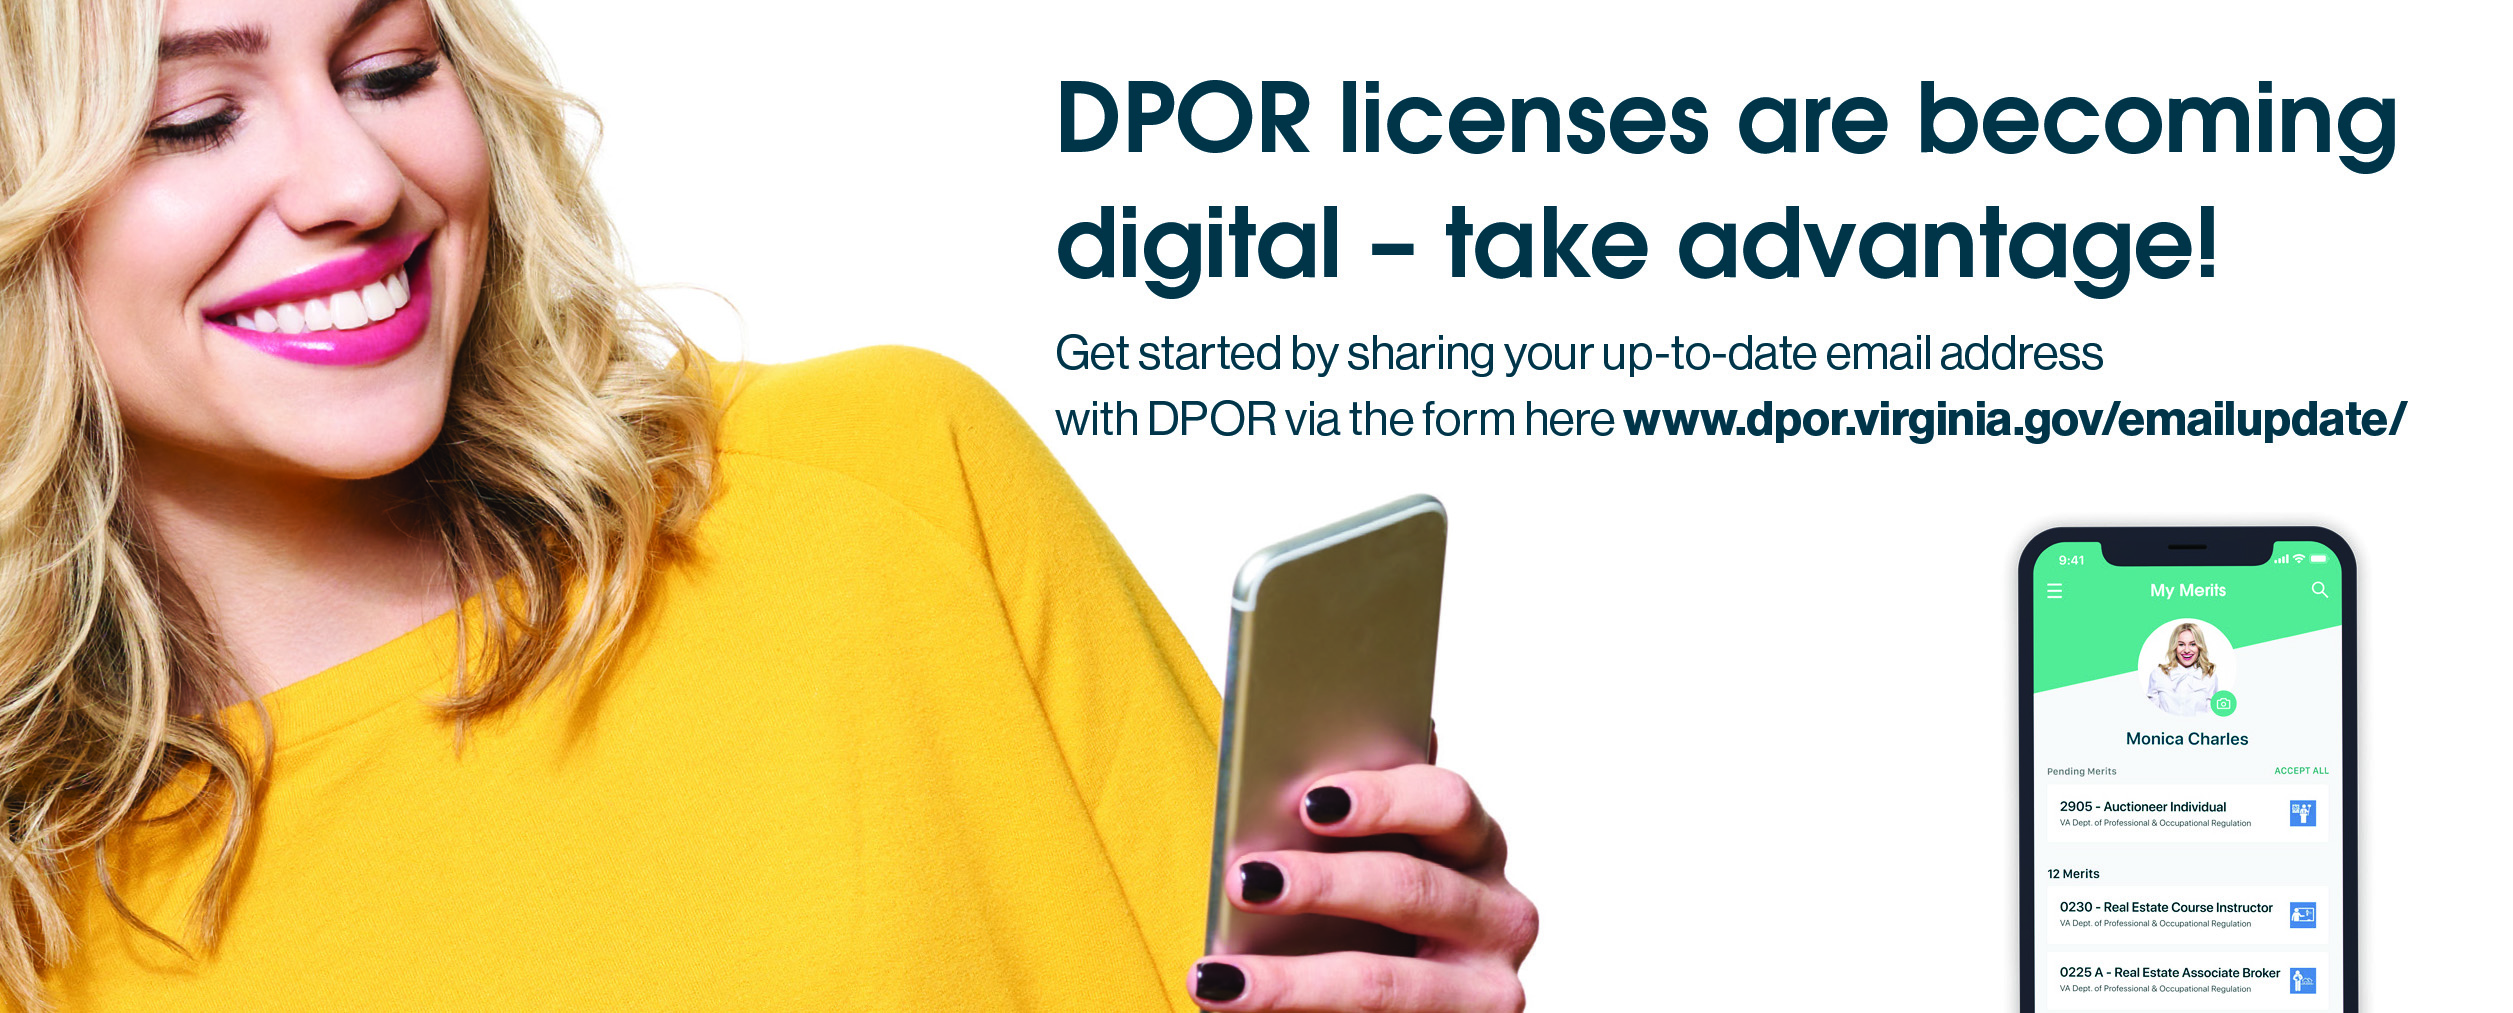 DPOR and Merit are partnering to offer digital licenses.